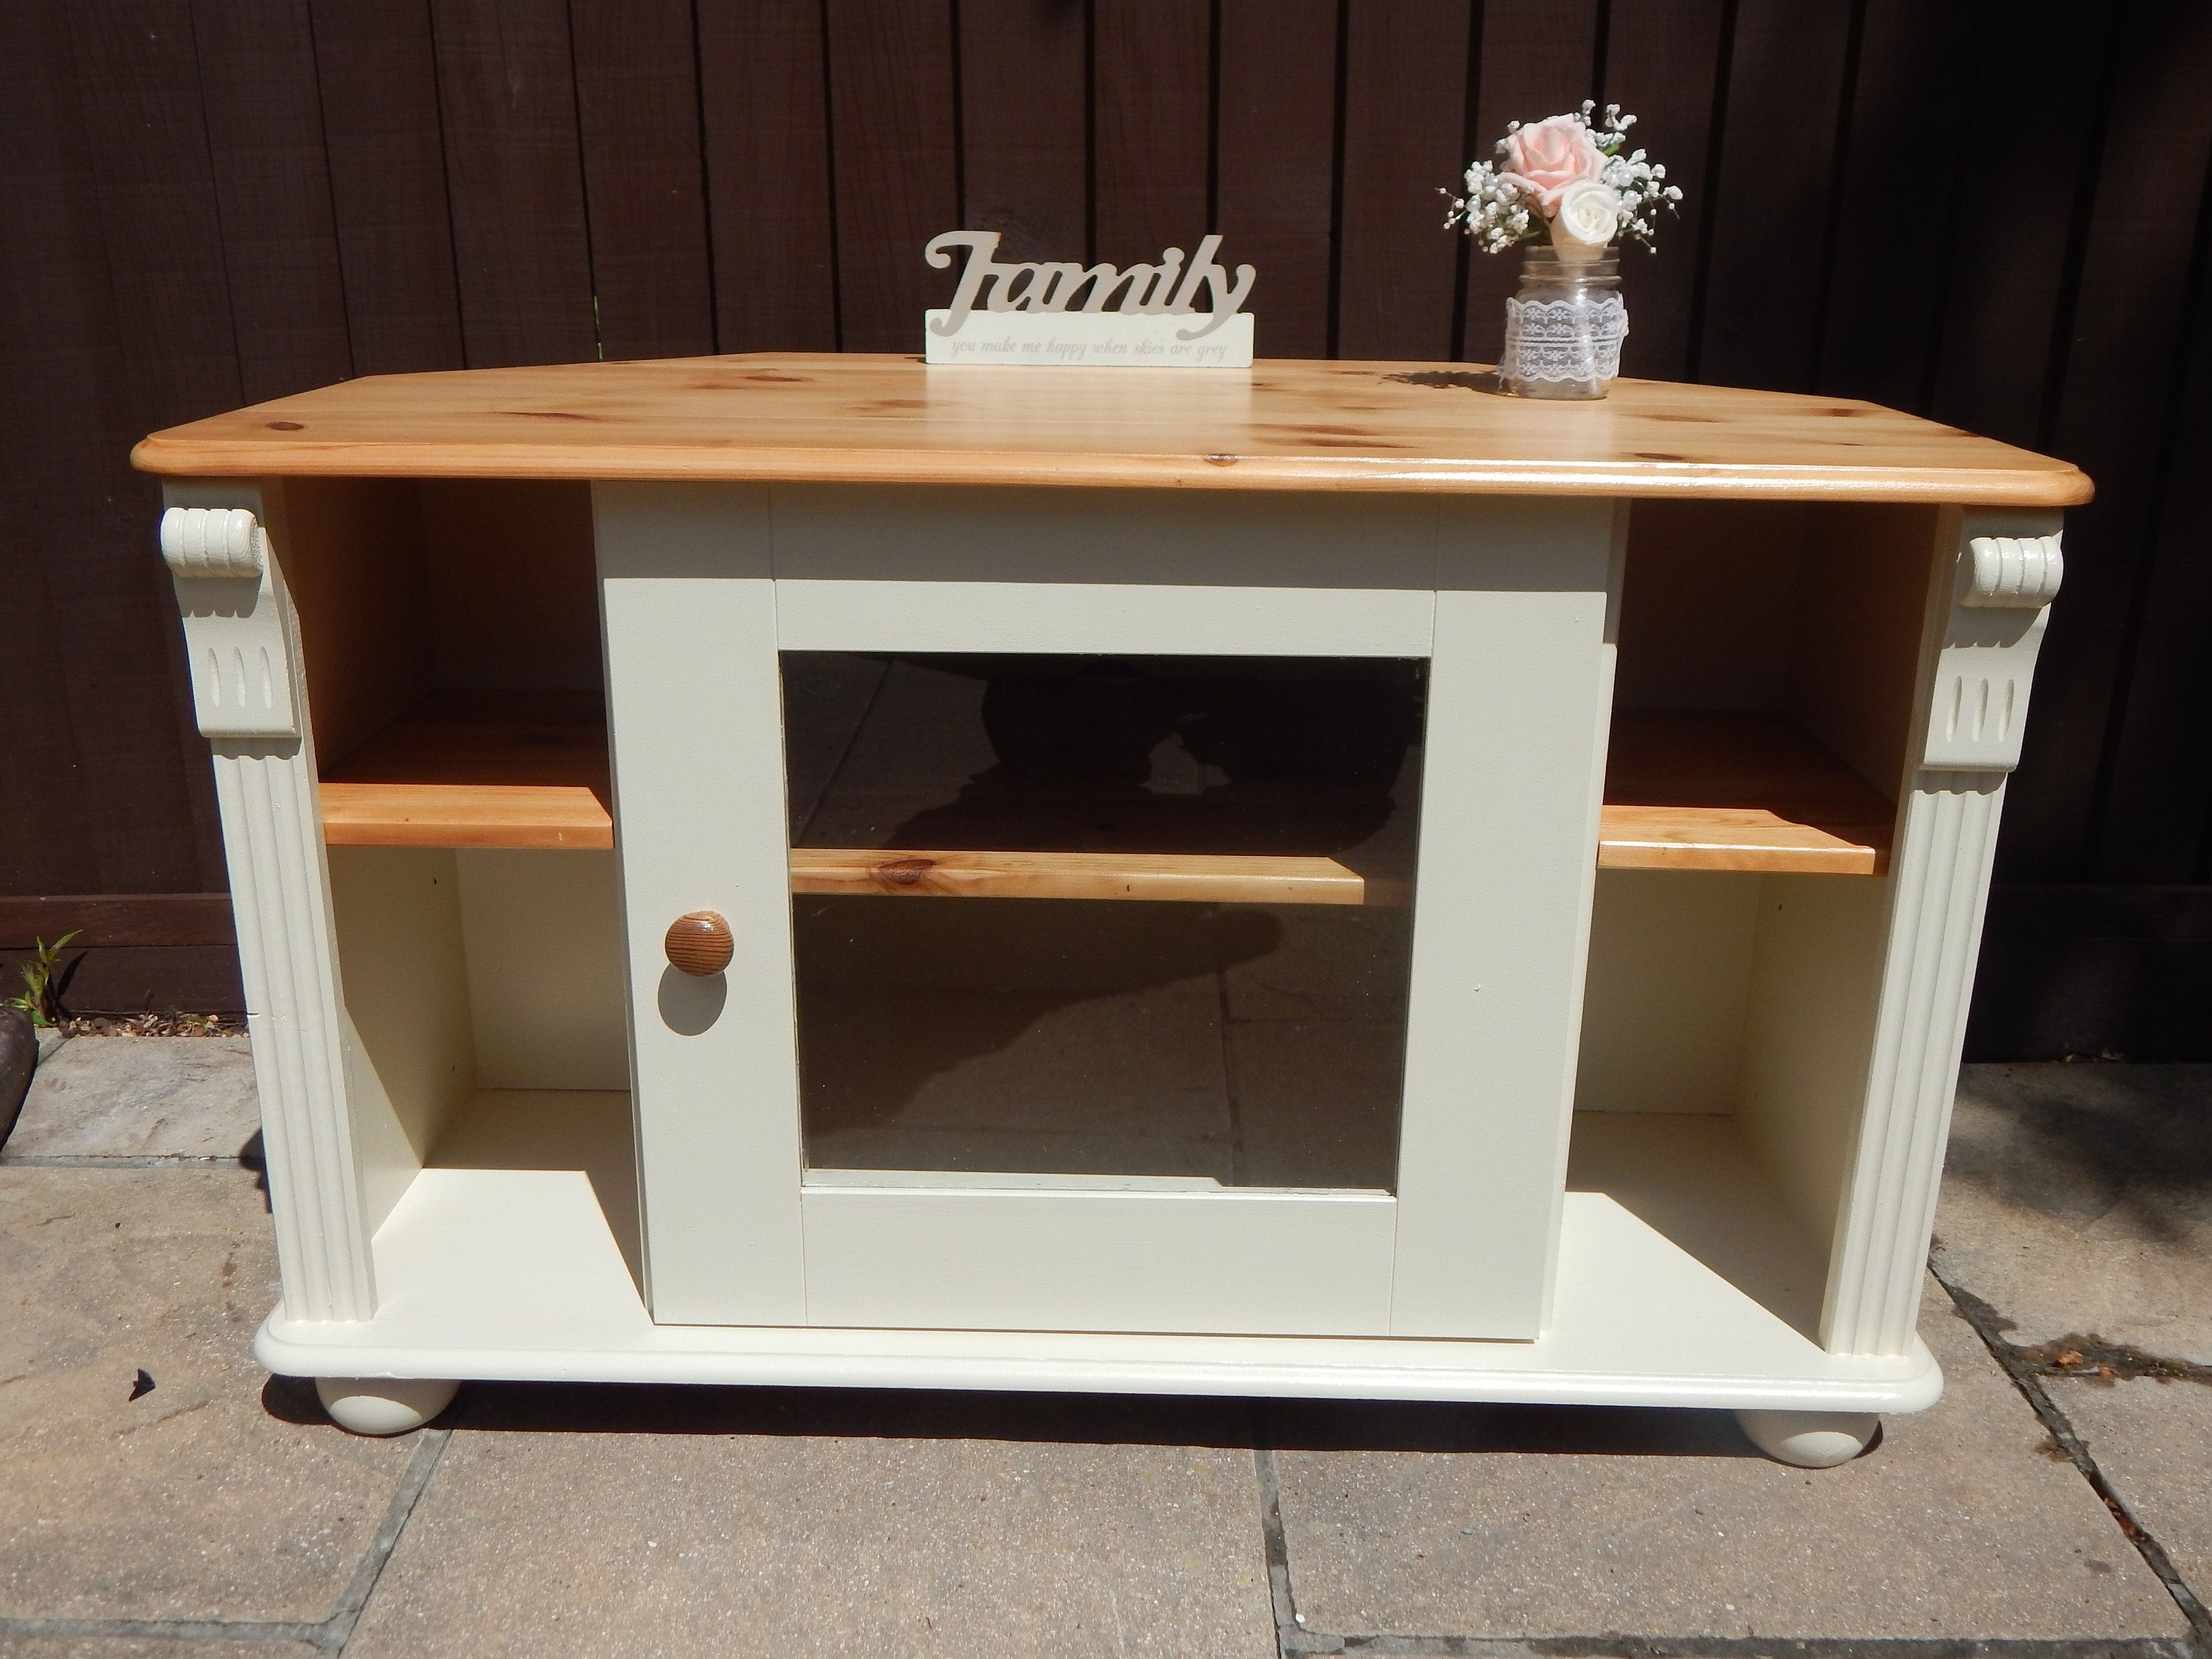 All painted and farmhouse furniture is on sale in our Etsy